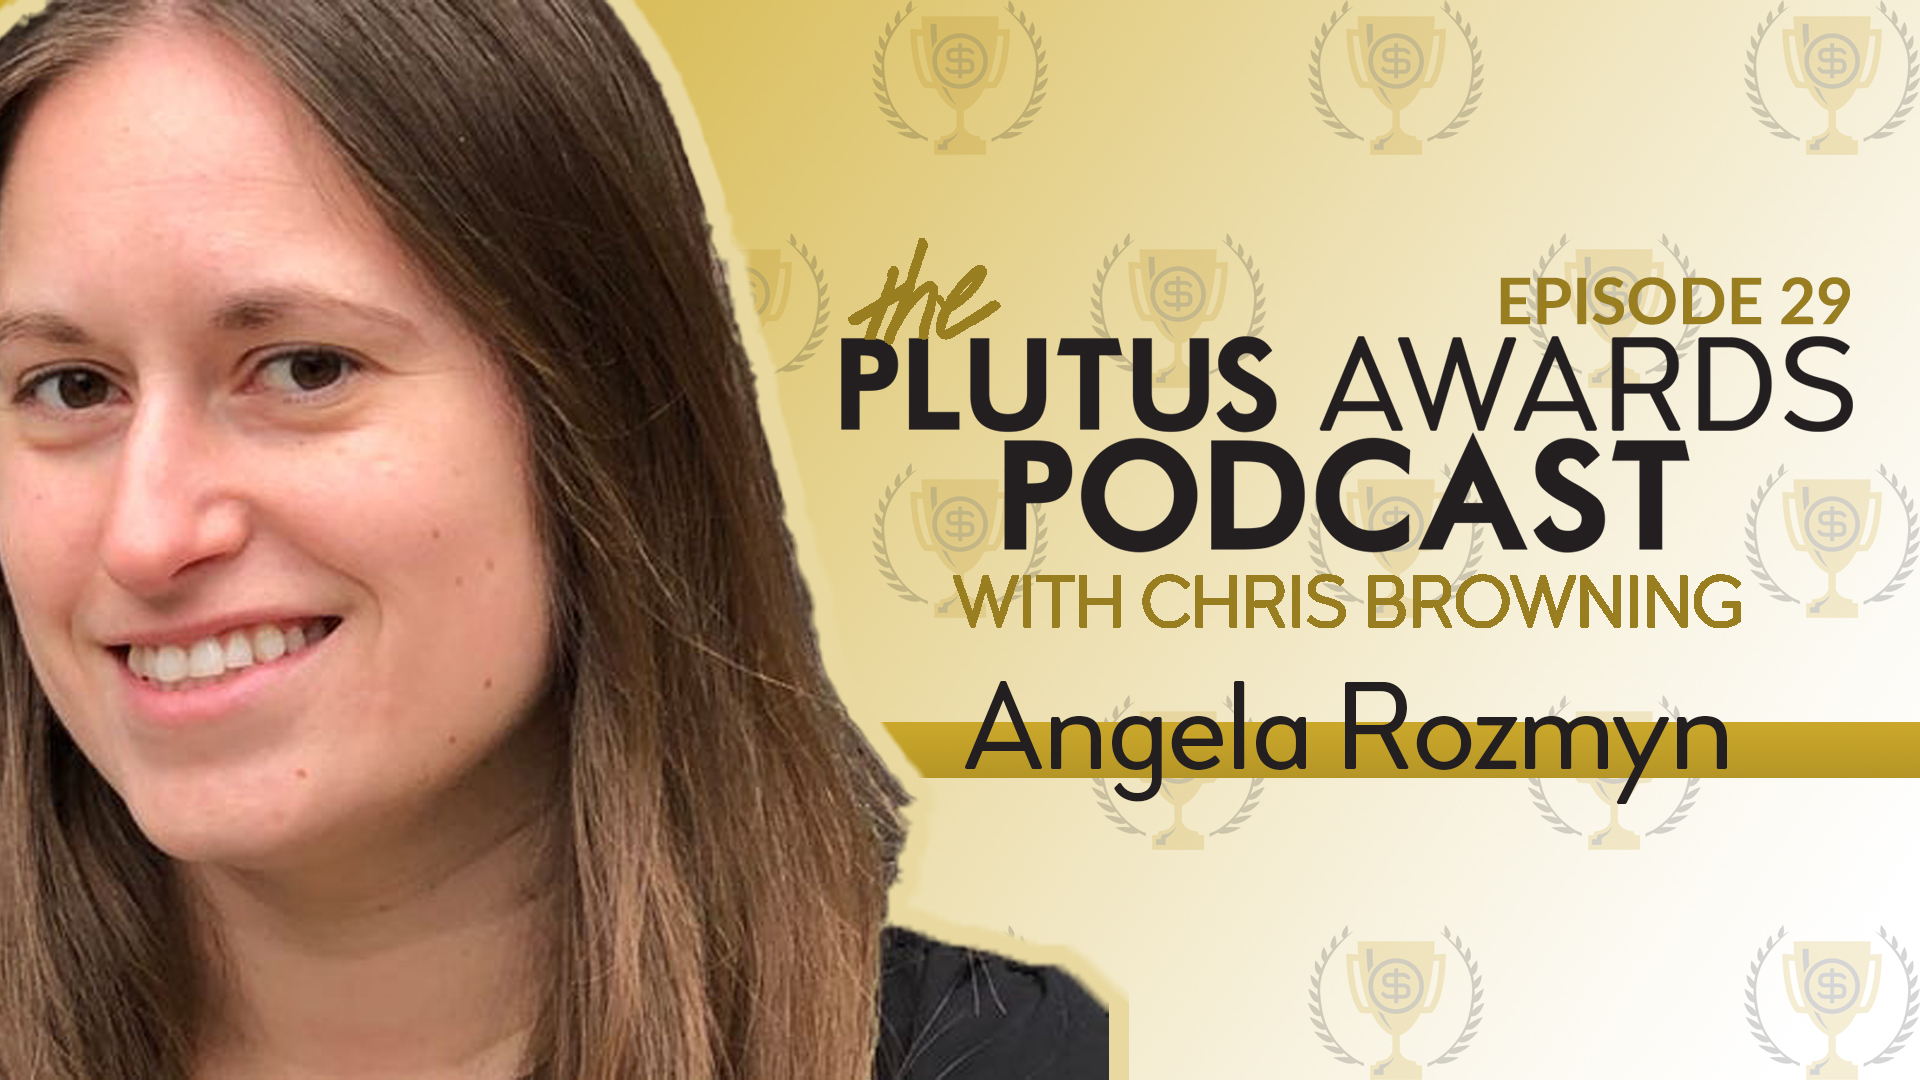 Angela Rozmyn Plutus Awards Podcast Featured Image